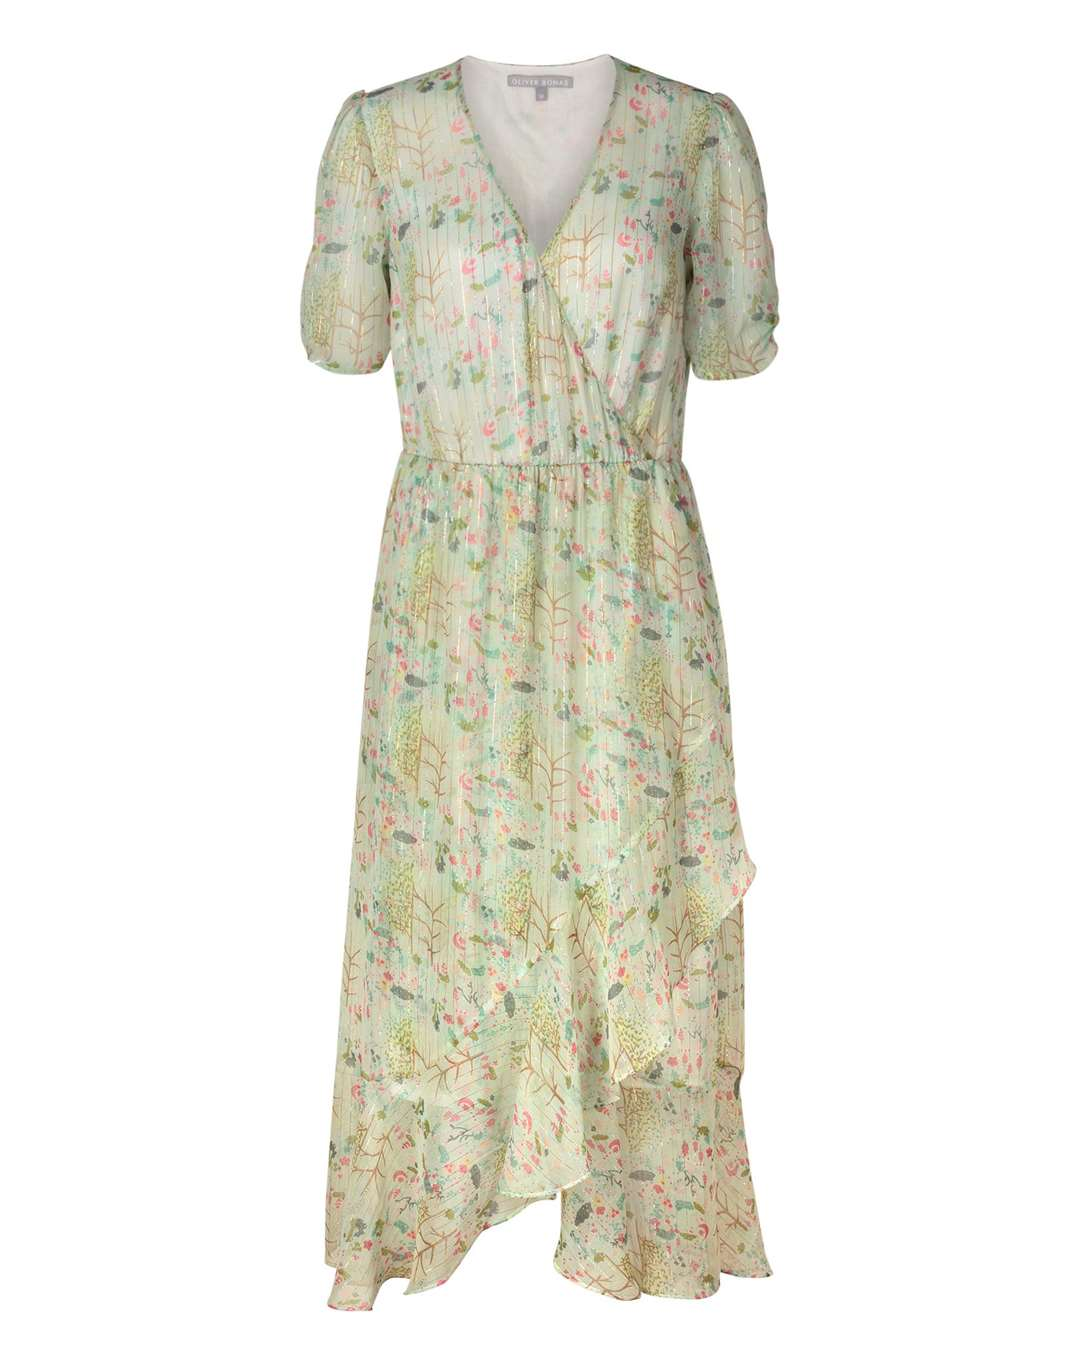 TEA DRESS Oliver Bonas Storyteller Print Dress, £75 (13640741)